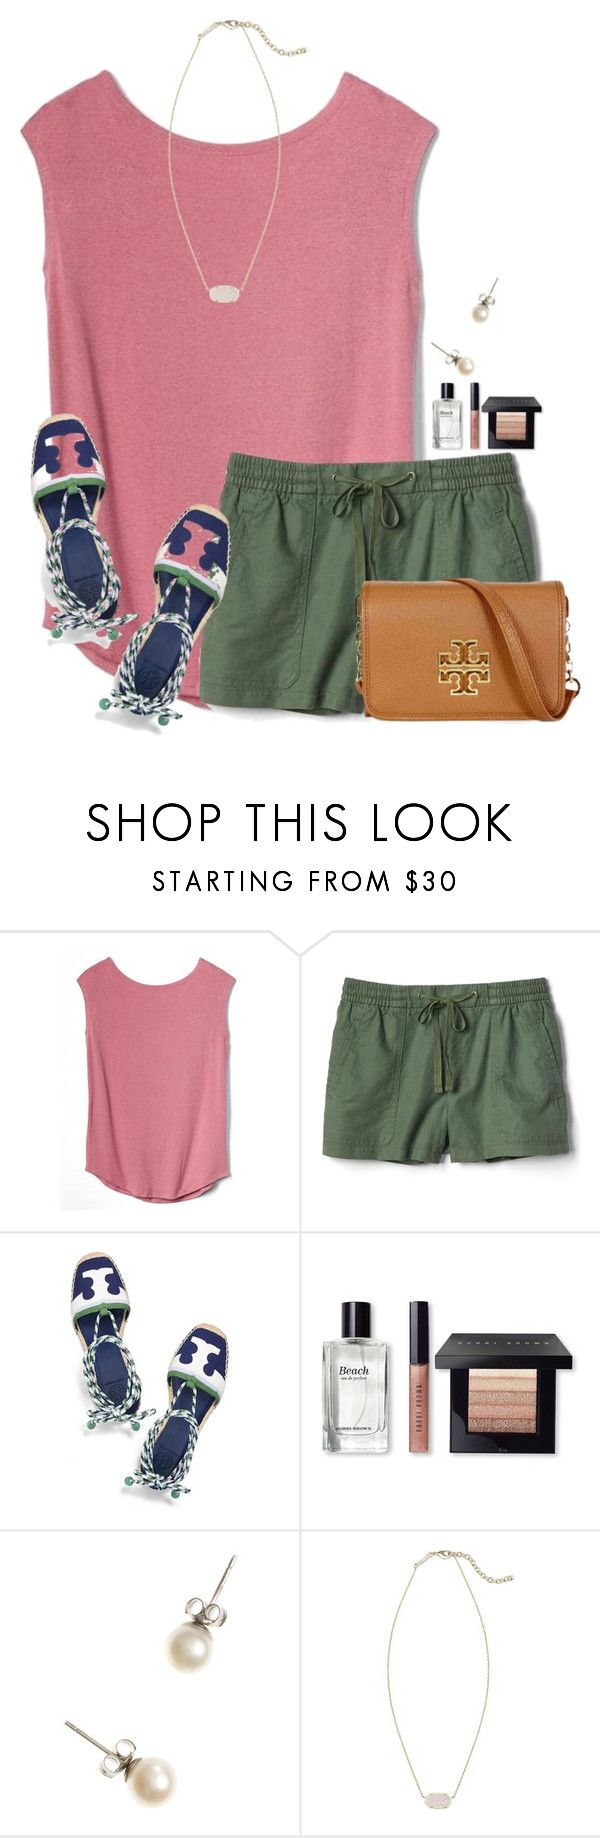 """~Watermelon colors~"" by flroasburn ❤ liked on Polyvore featuring Gap, Tory Burch, Bobbi Brown Cosmetics, J.Crew and Kendra Scott"